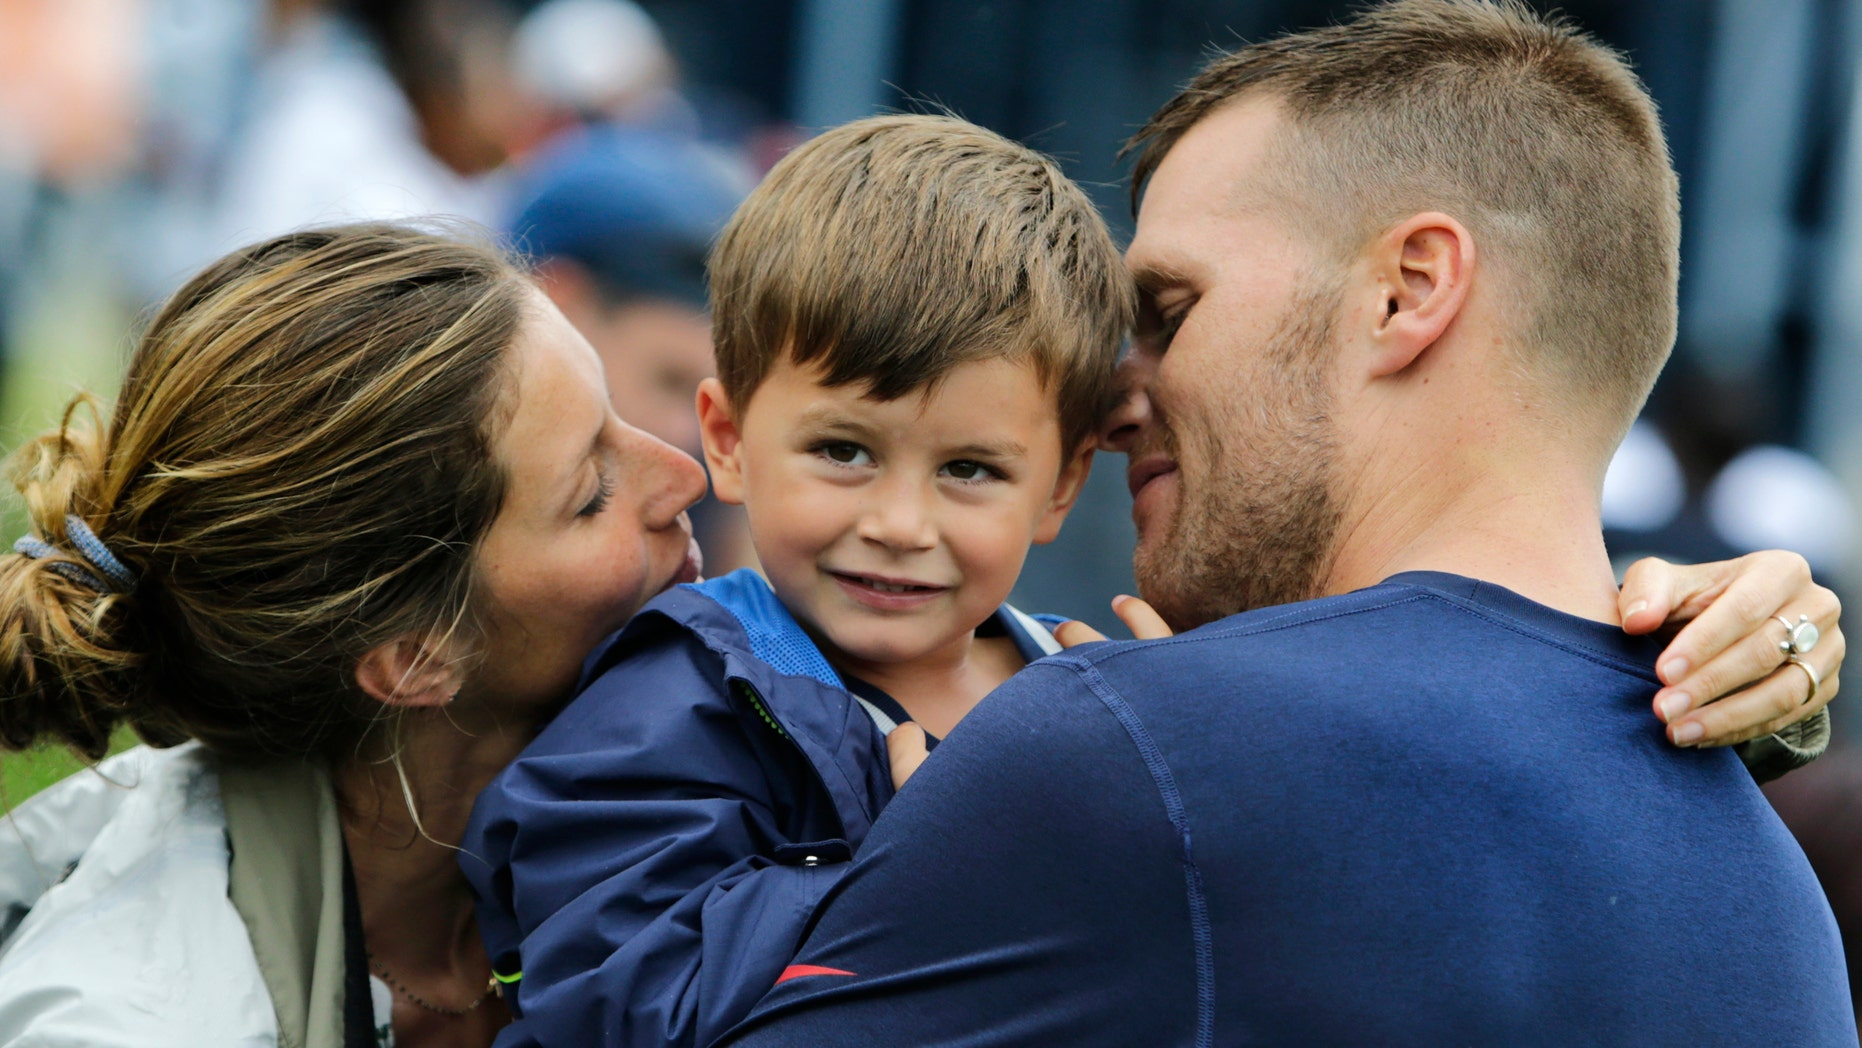 New England Patriots quarterback Tom Brady and his wife Gisele Bundchen embrace their son Benjamin Brady after a joint workout with the Tampa Bay Buccaneers at NFL football training camp, in Foxborough, Mass., Tuesday, Aug. 13, 2013. (AP Photo/Charles Krupa)